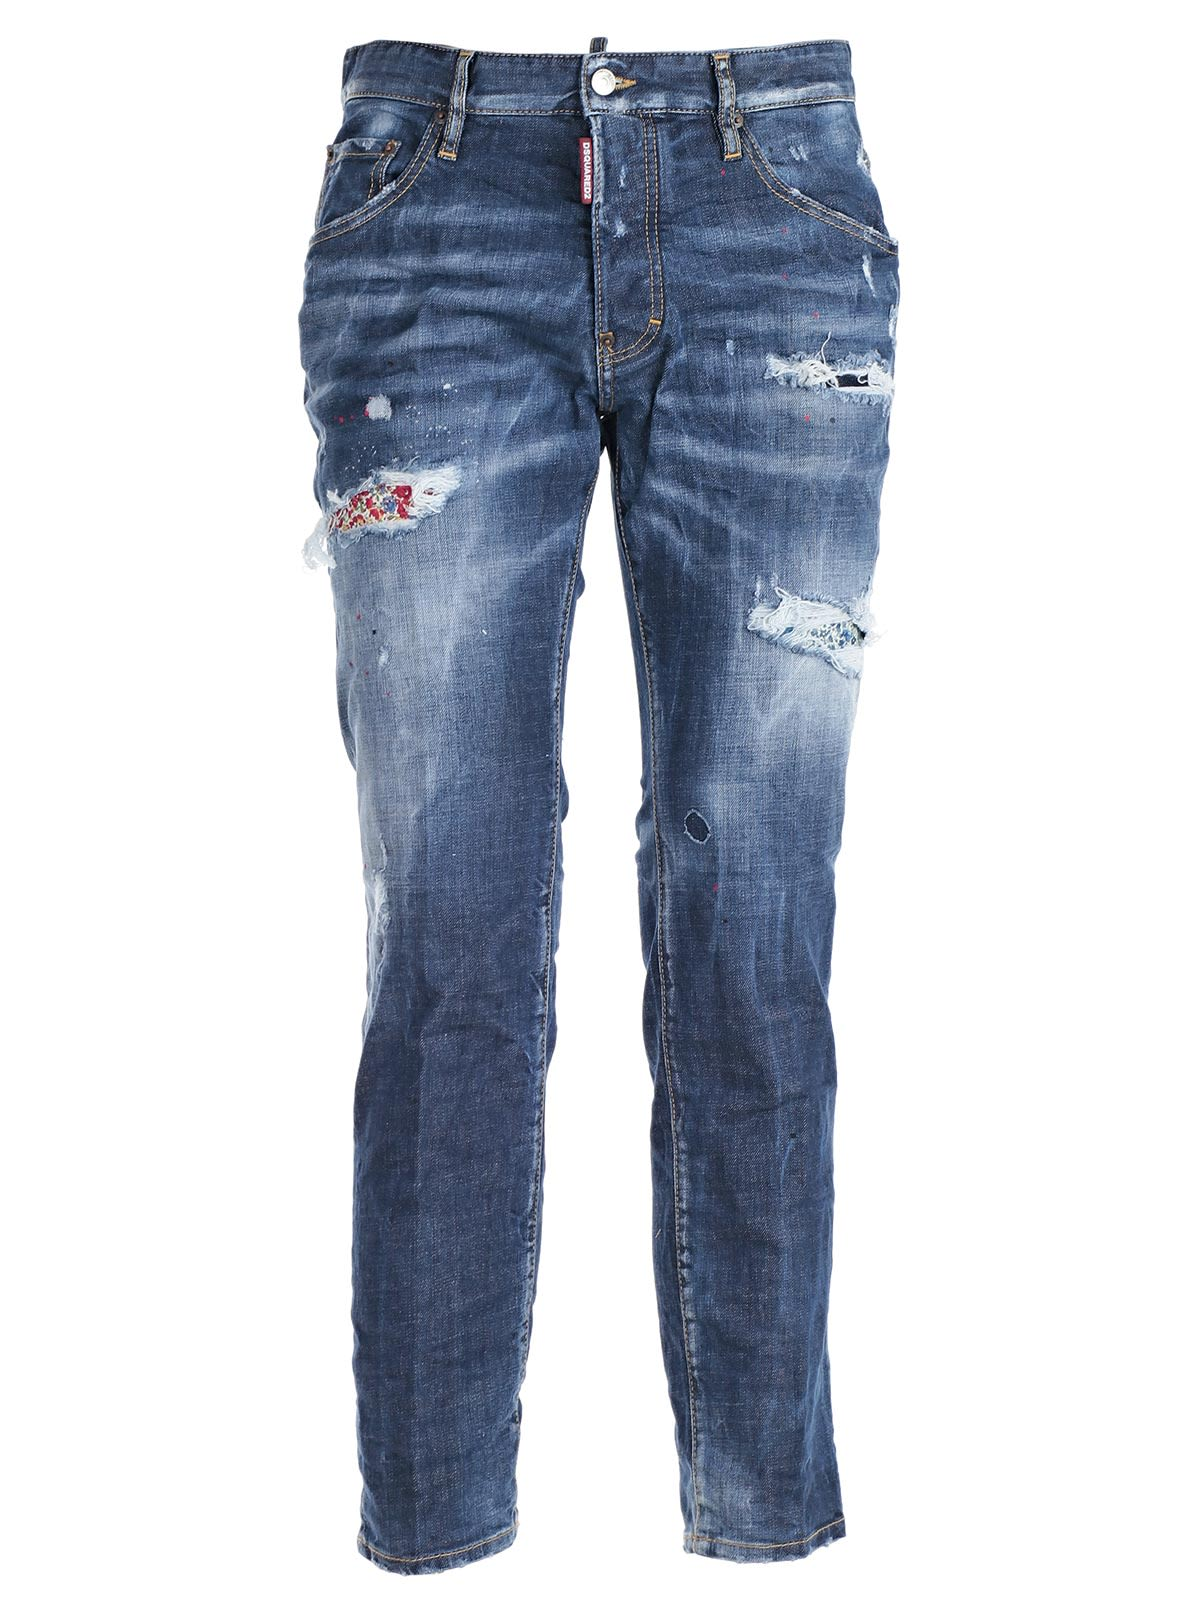 DSQUARED2 JEANS RUN DAN